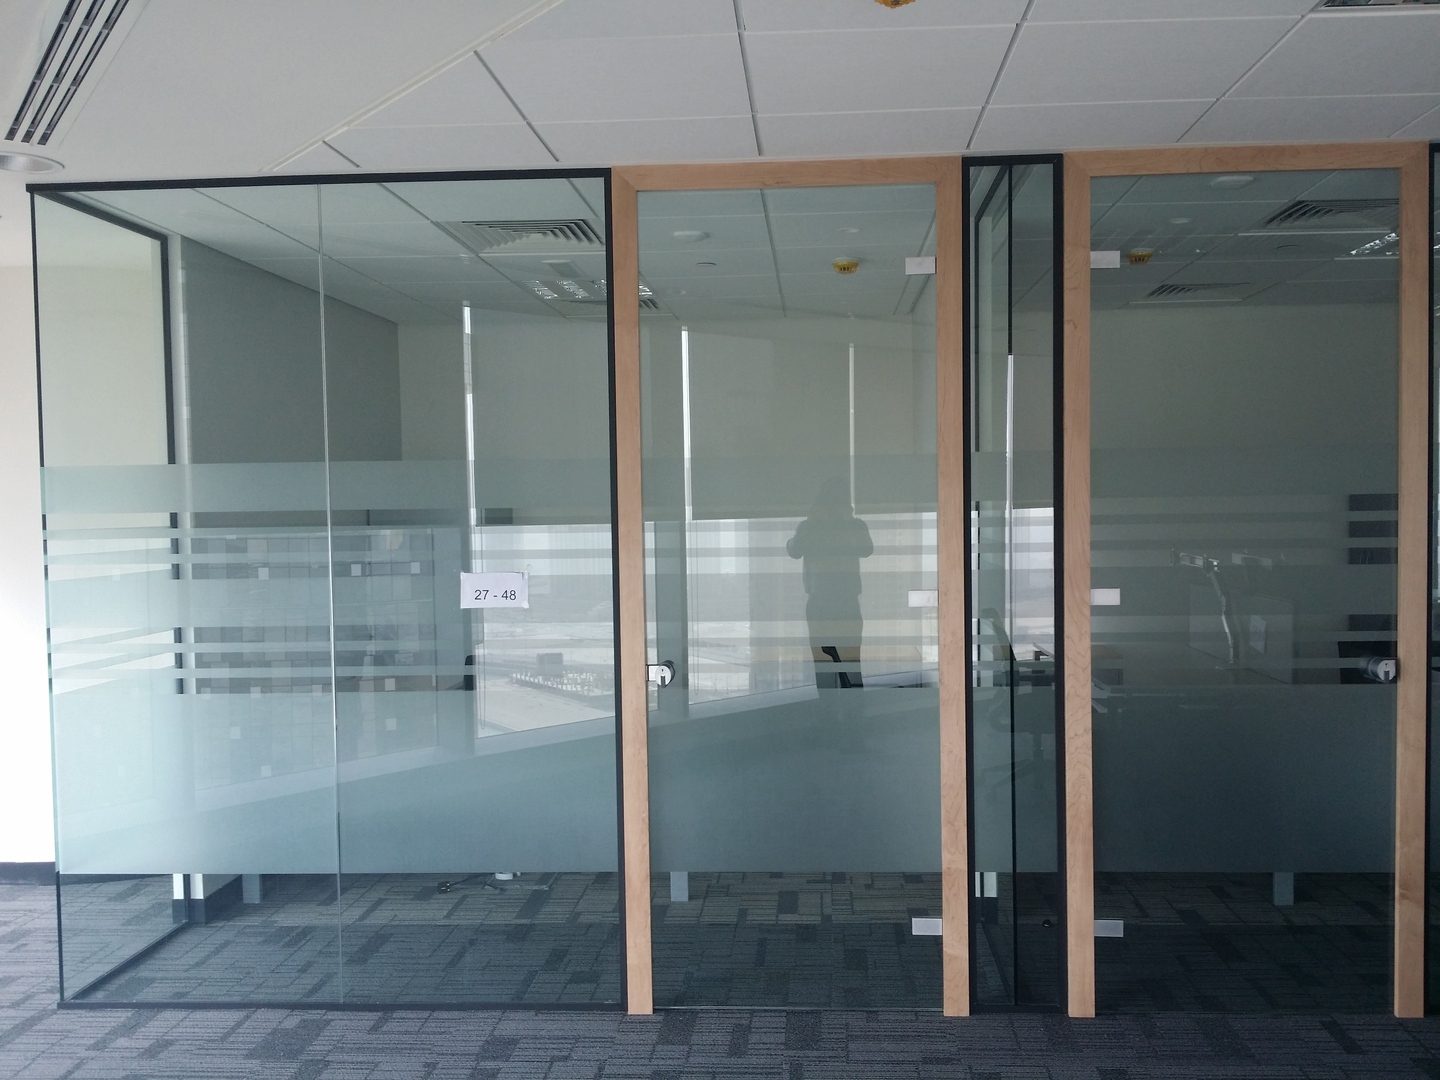 Fire rated glass office doors -  Fire Rated Steel Doors Fire Rated Stainless Steel Doors Folding Doors Sliding Door Framed Sliding Door Frameless Sliding Doors Manet Sliding Door